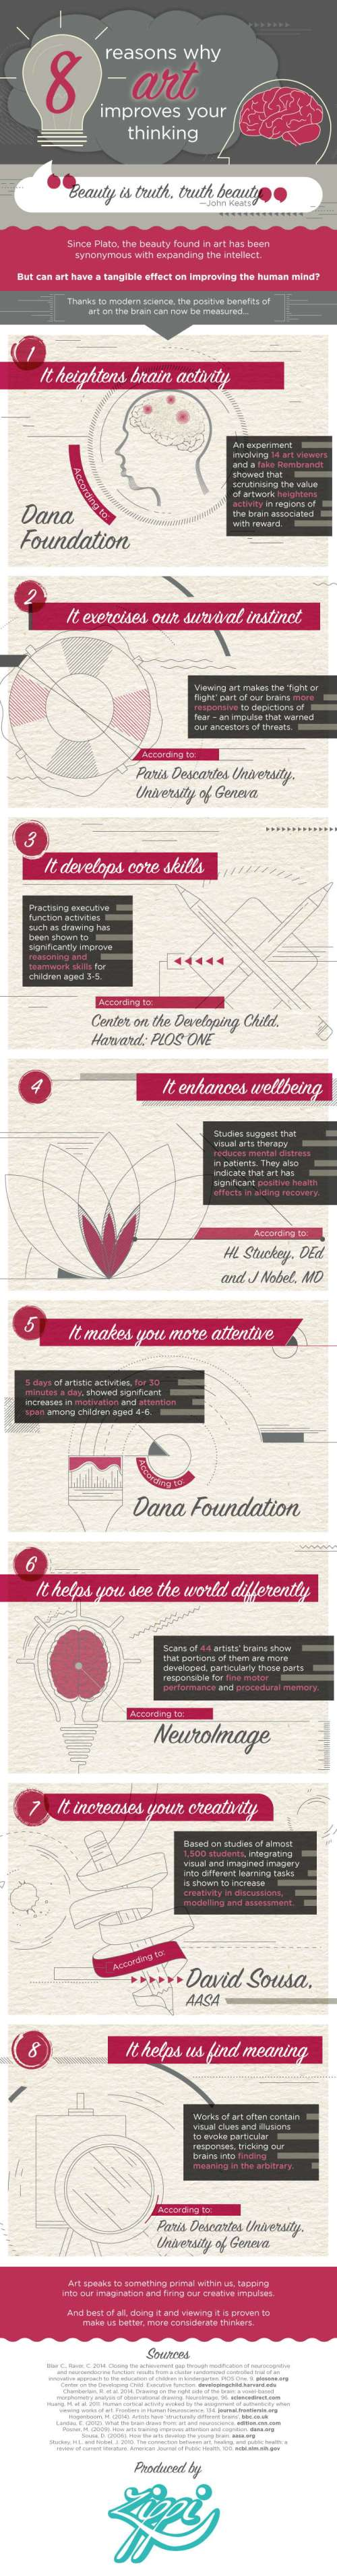 8-Reasons-Why-Art-Improves-Your-Thinking